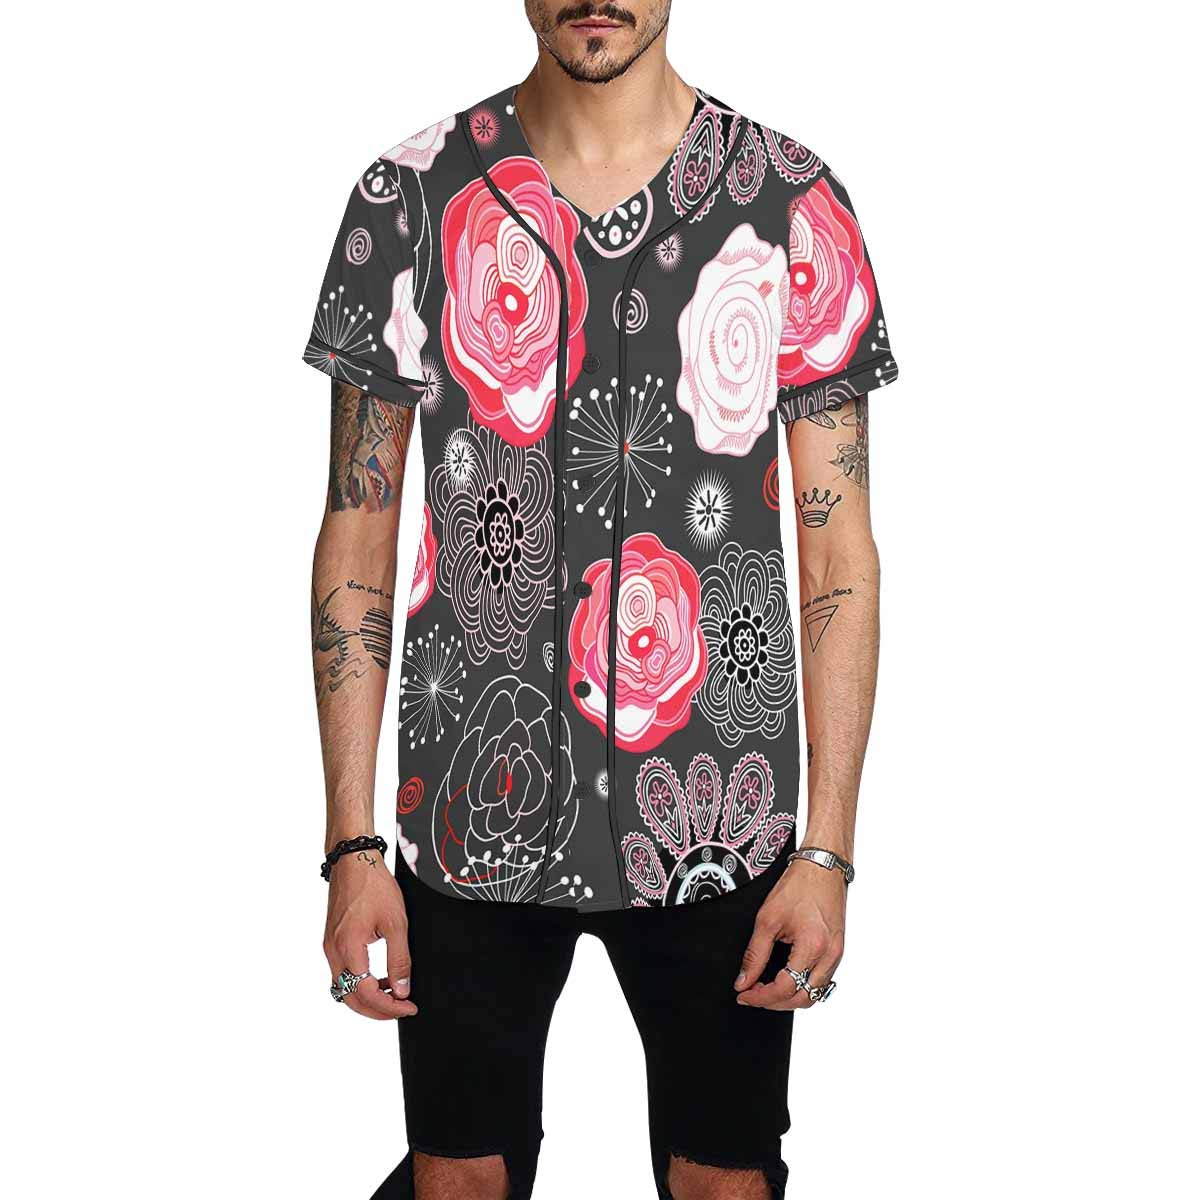 INTERESTPRINT Mens Button Down Baseball Jersey Bright Floral Pattern